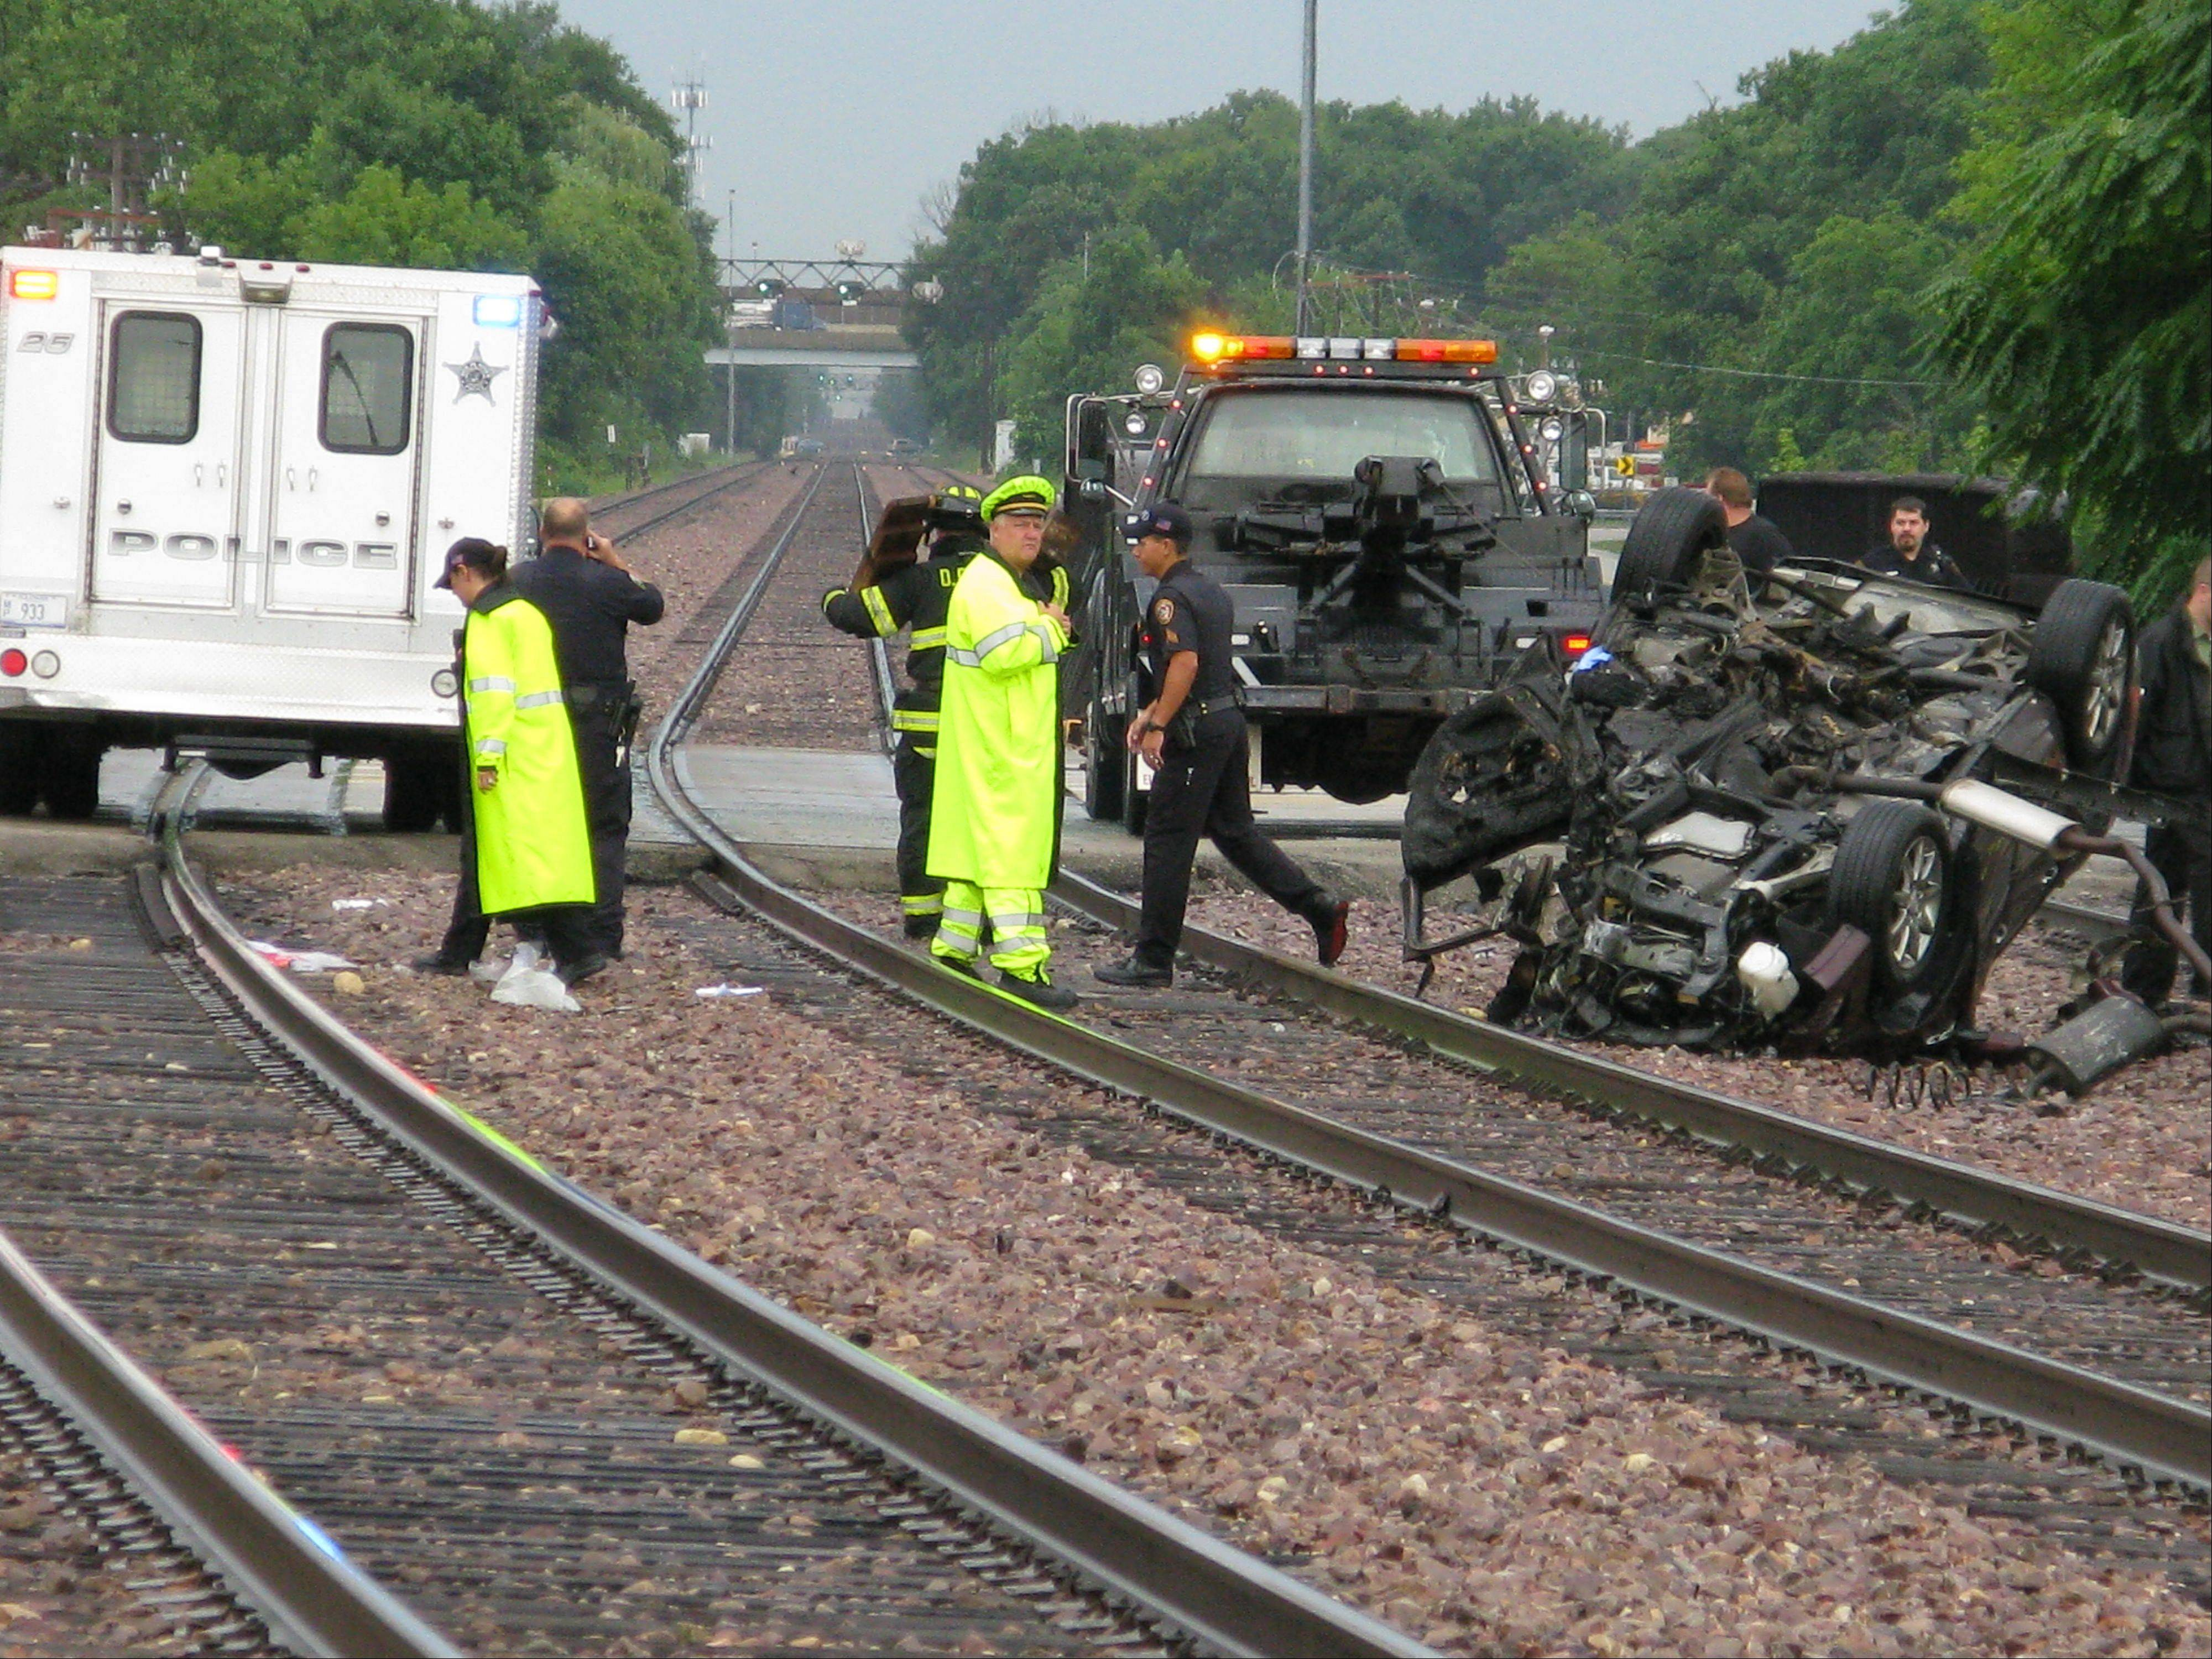 Daily Herald file photoAccidents like this August 2010 fatal collision with a car and Metra train in Des Plaines can be prevented, experts say.